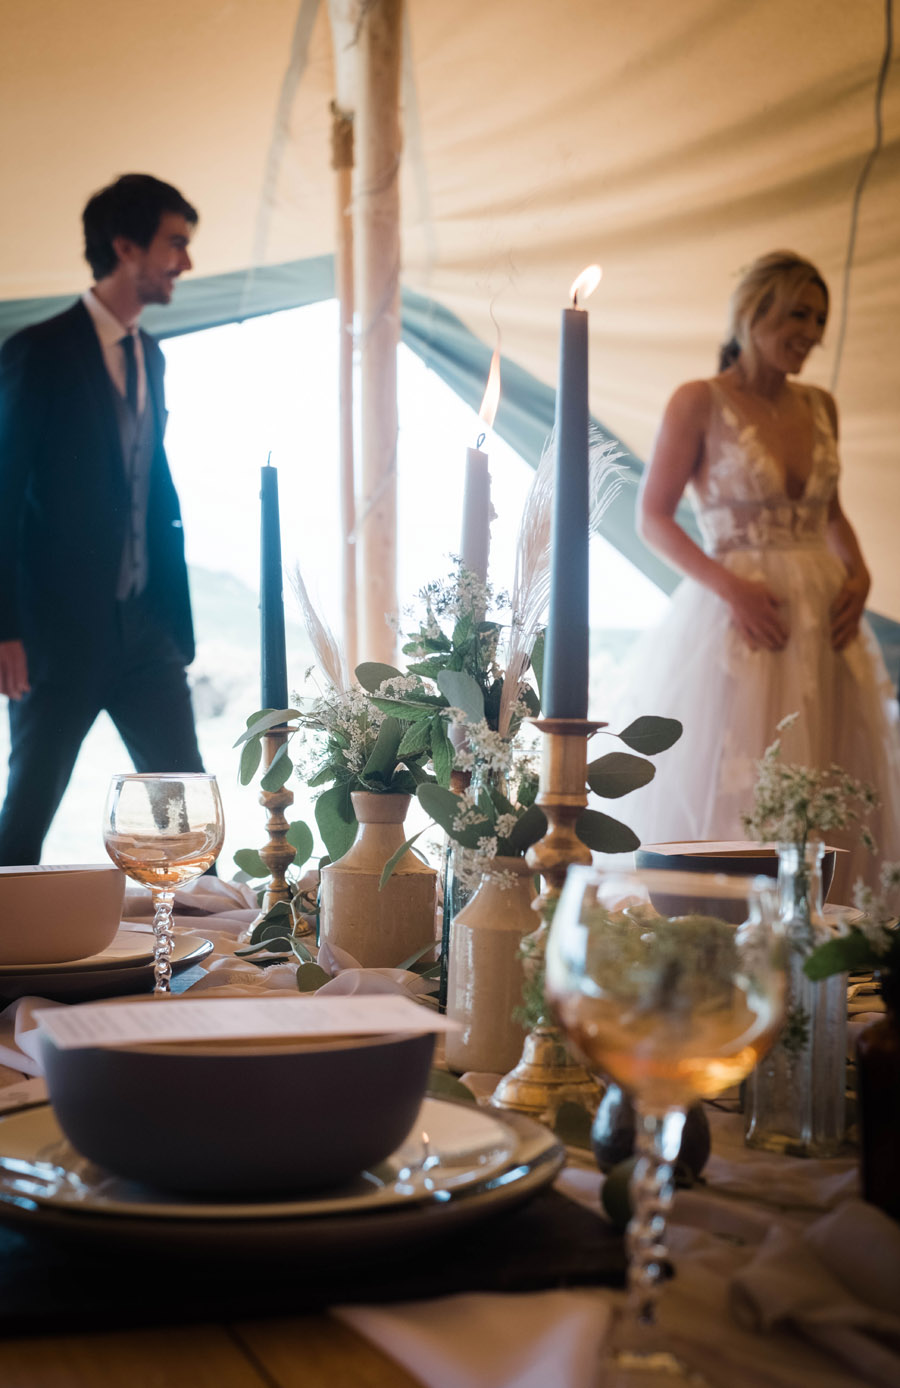 Cornwall festival weddings with Wild Tipi, image by Verity Westcott Photography (7)